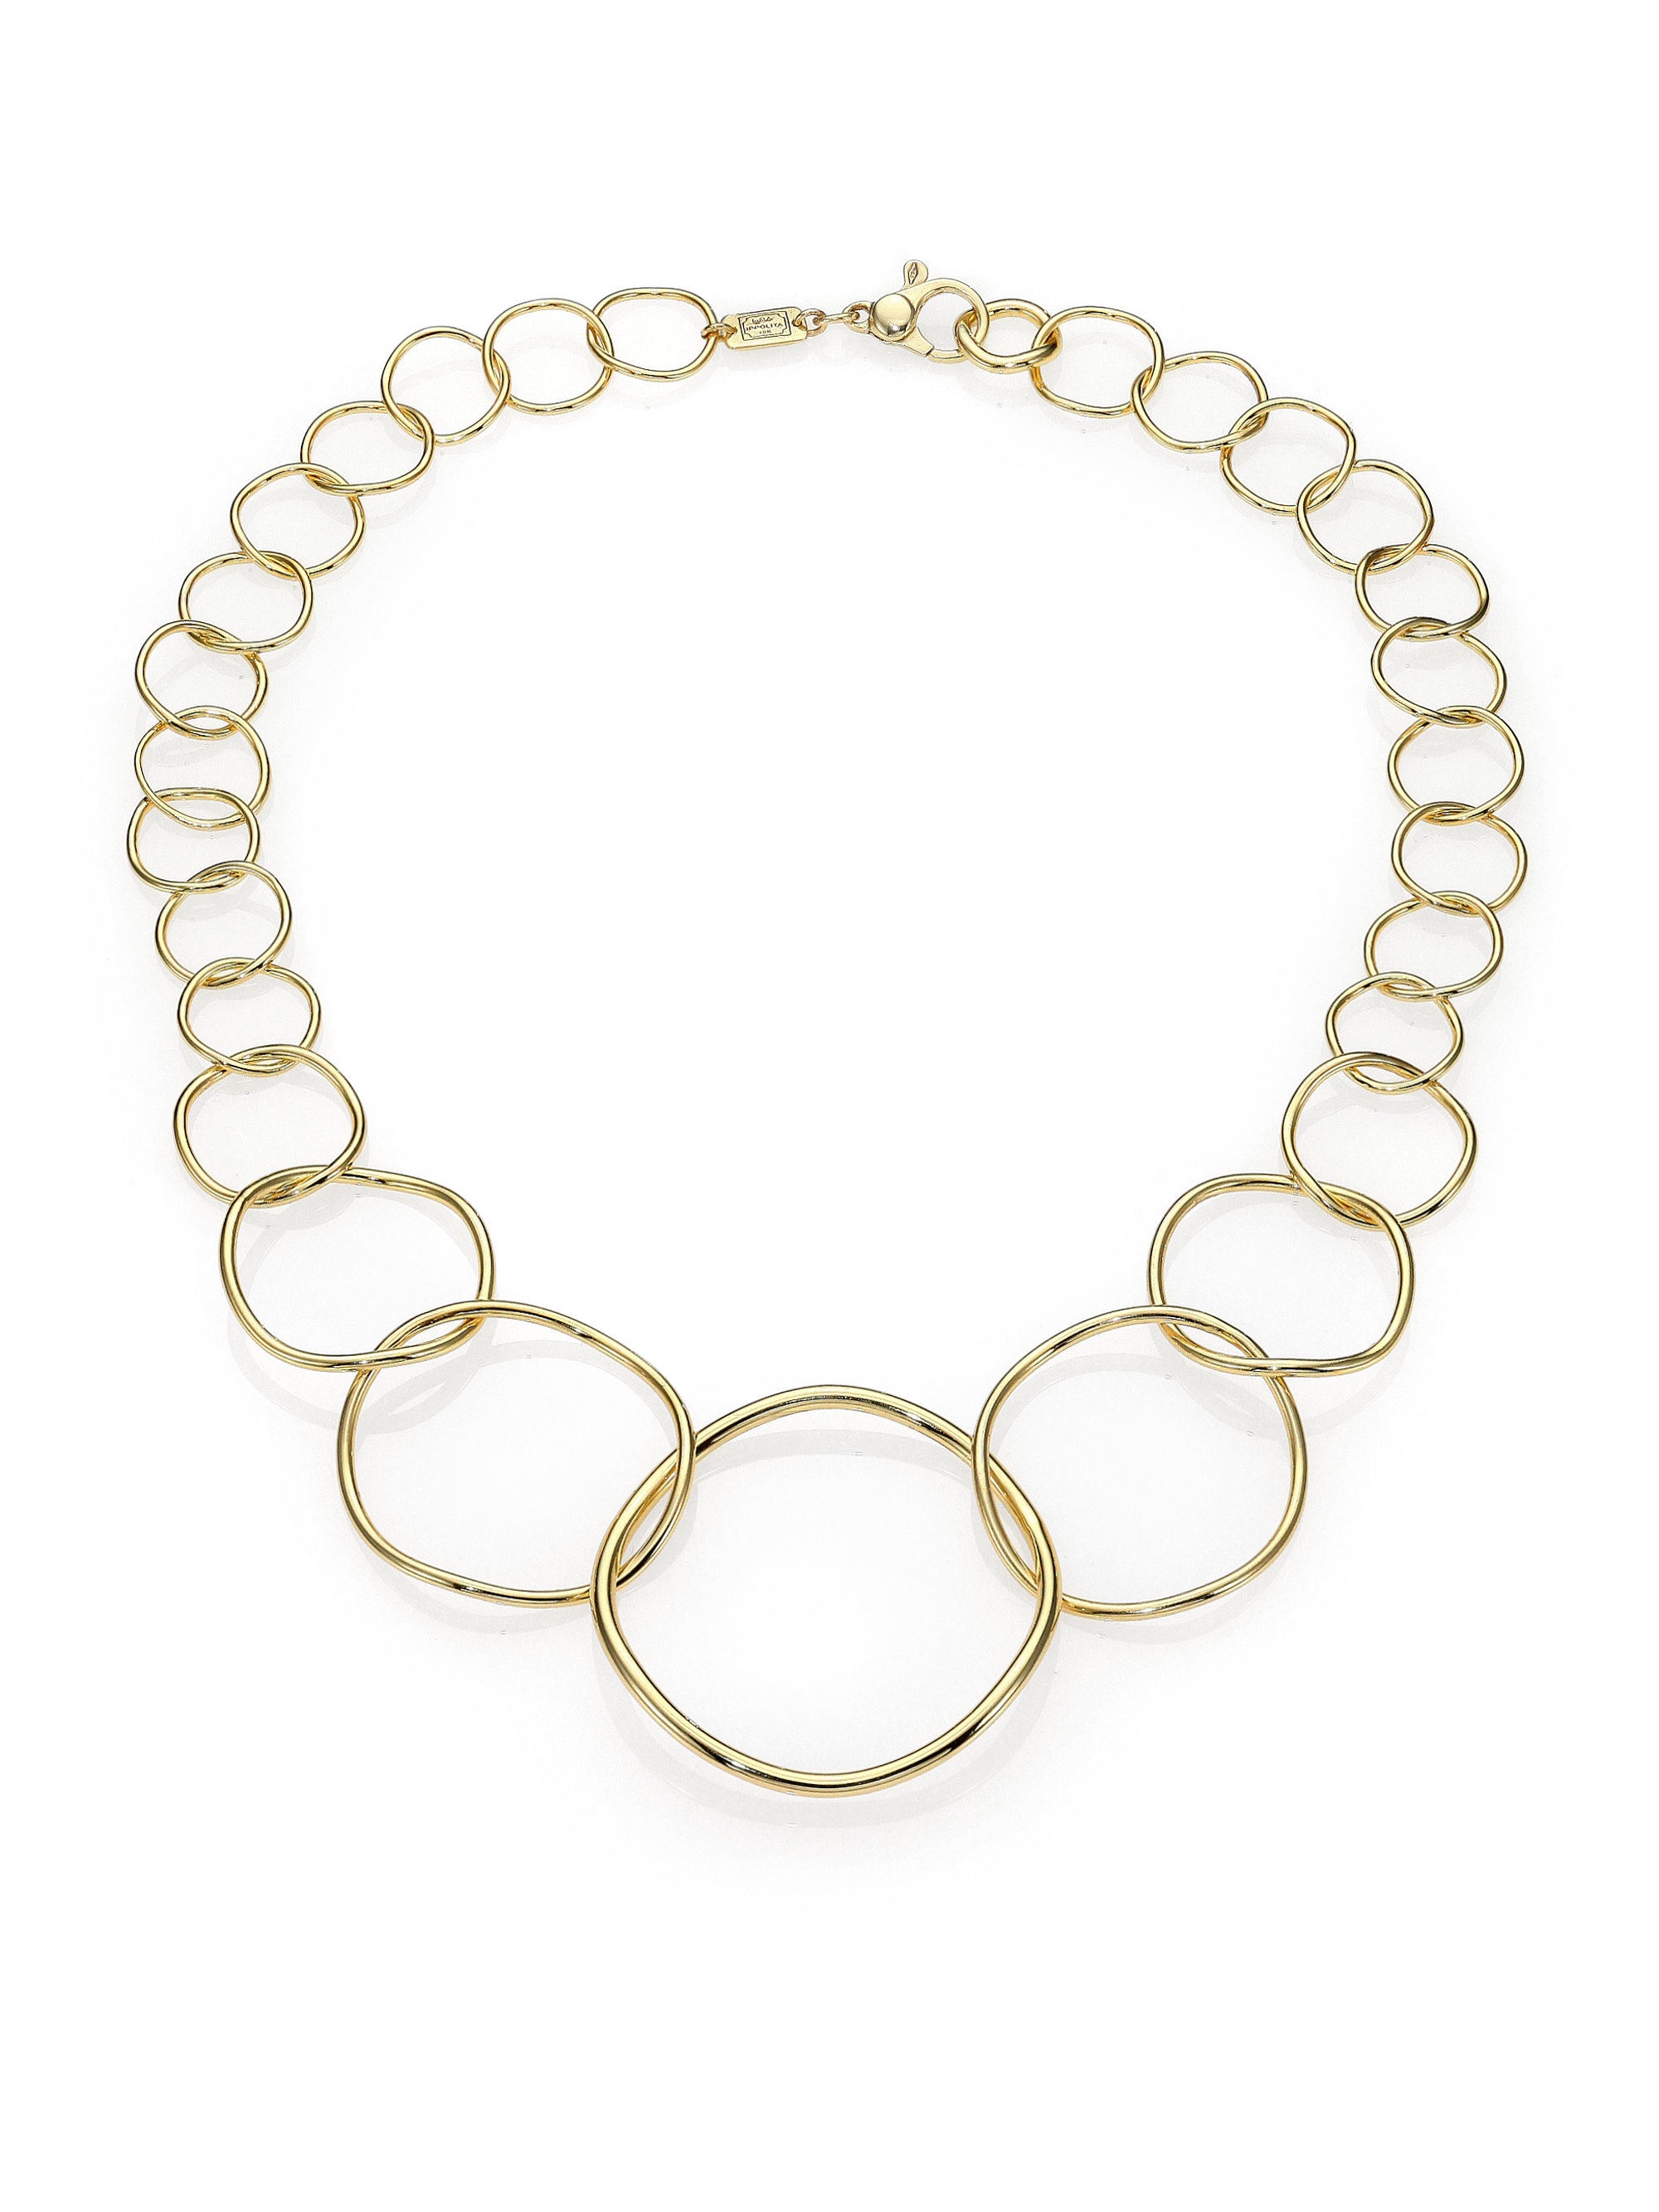 Ippolita Silver Glamazon Graduated Wavy Circle Necklace pF7YvyRF5S